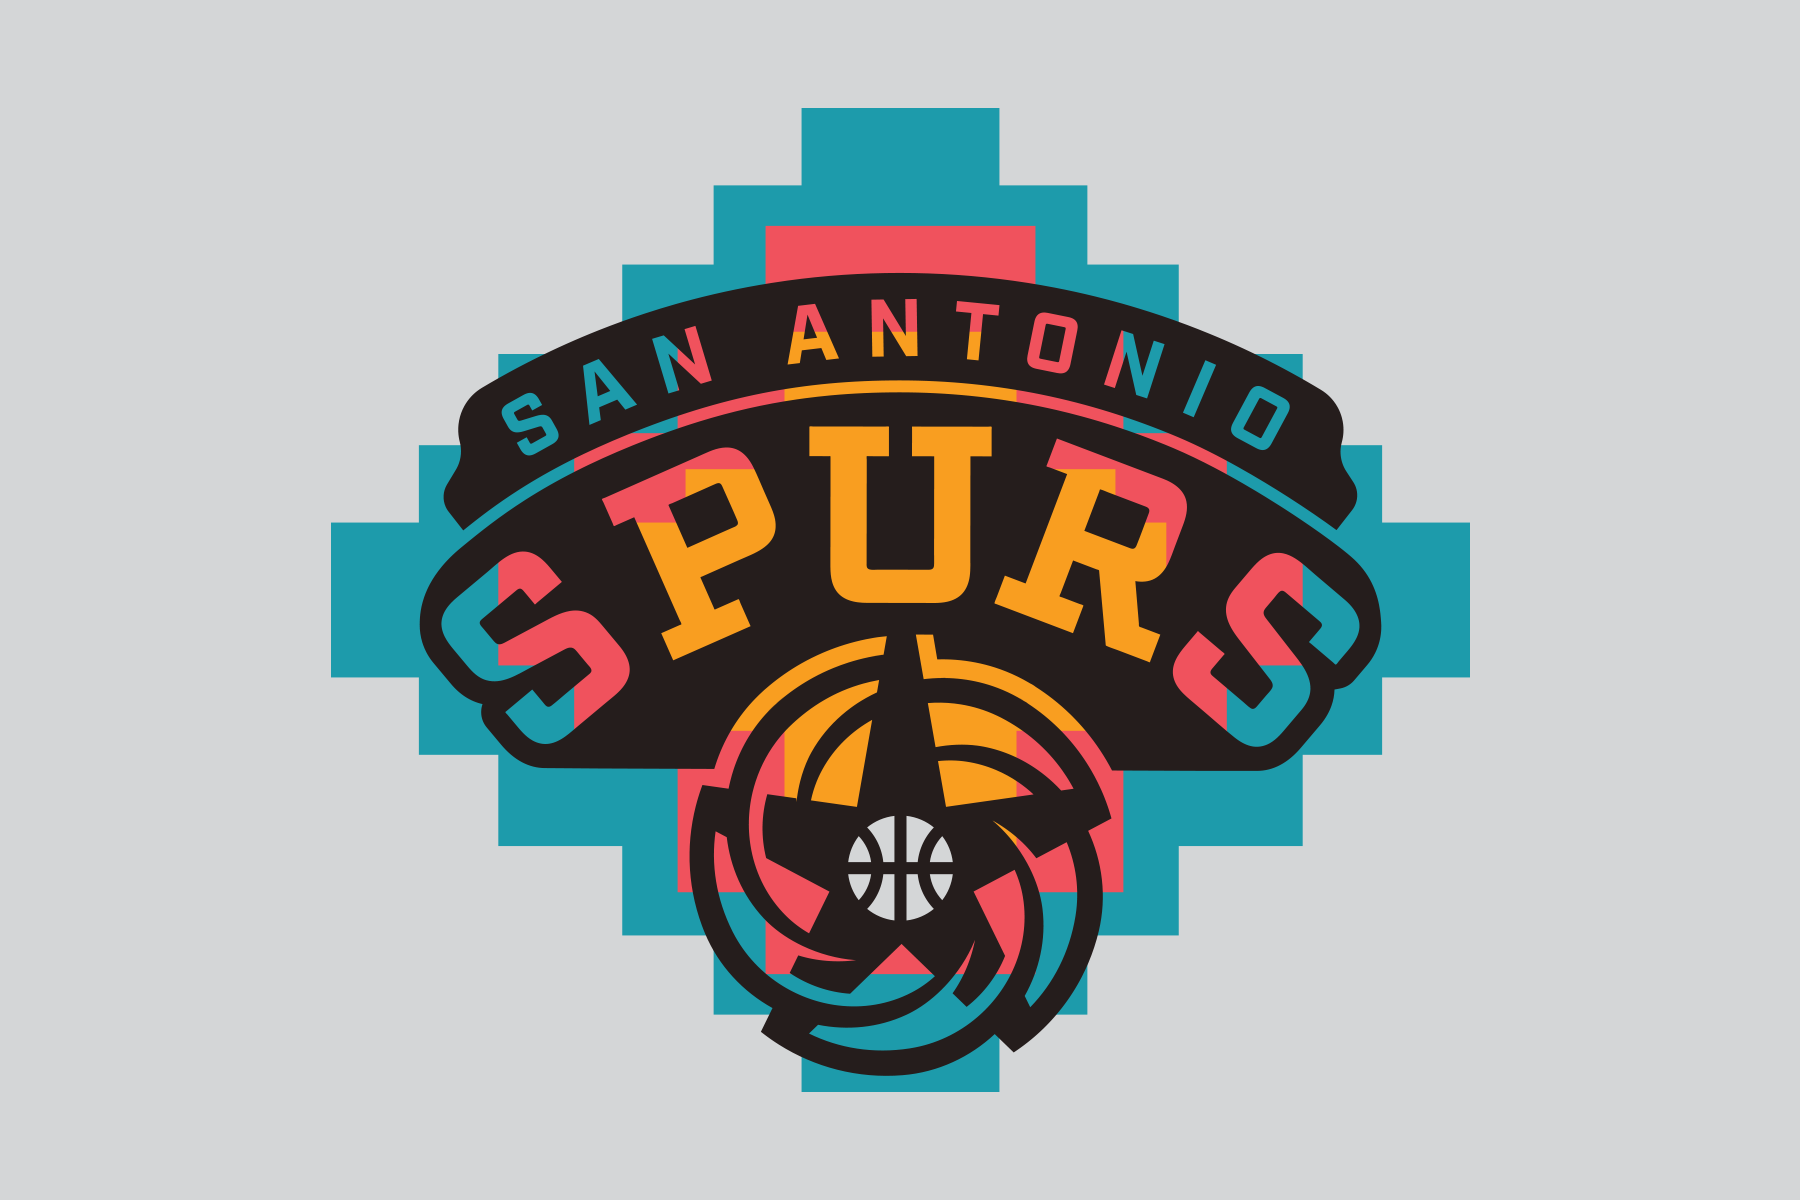 e53f4fcea9a NBA Logo Redesigns: San Antonio Spurs - fiesta colors ...